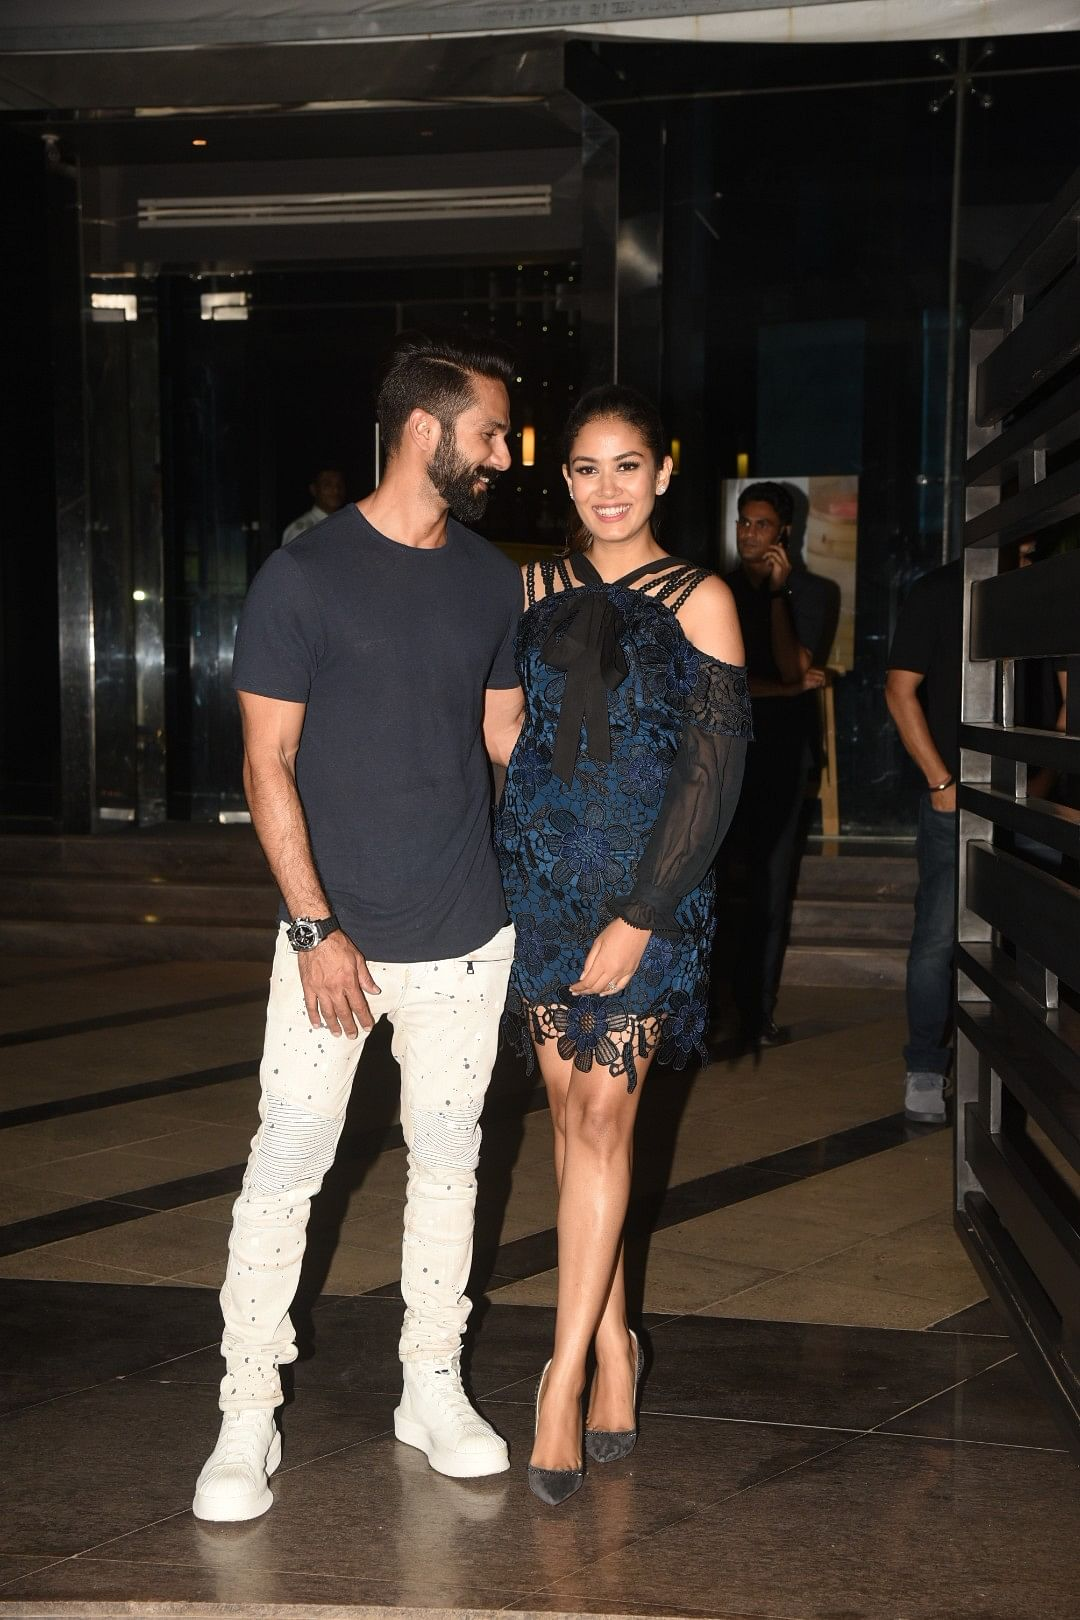 Shahid Kapoor and Mira Rajput step out to get clicked by the paparazzi.